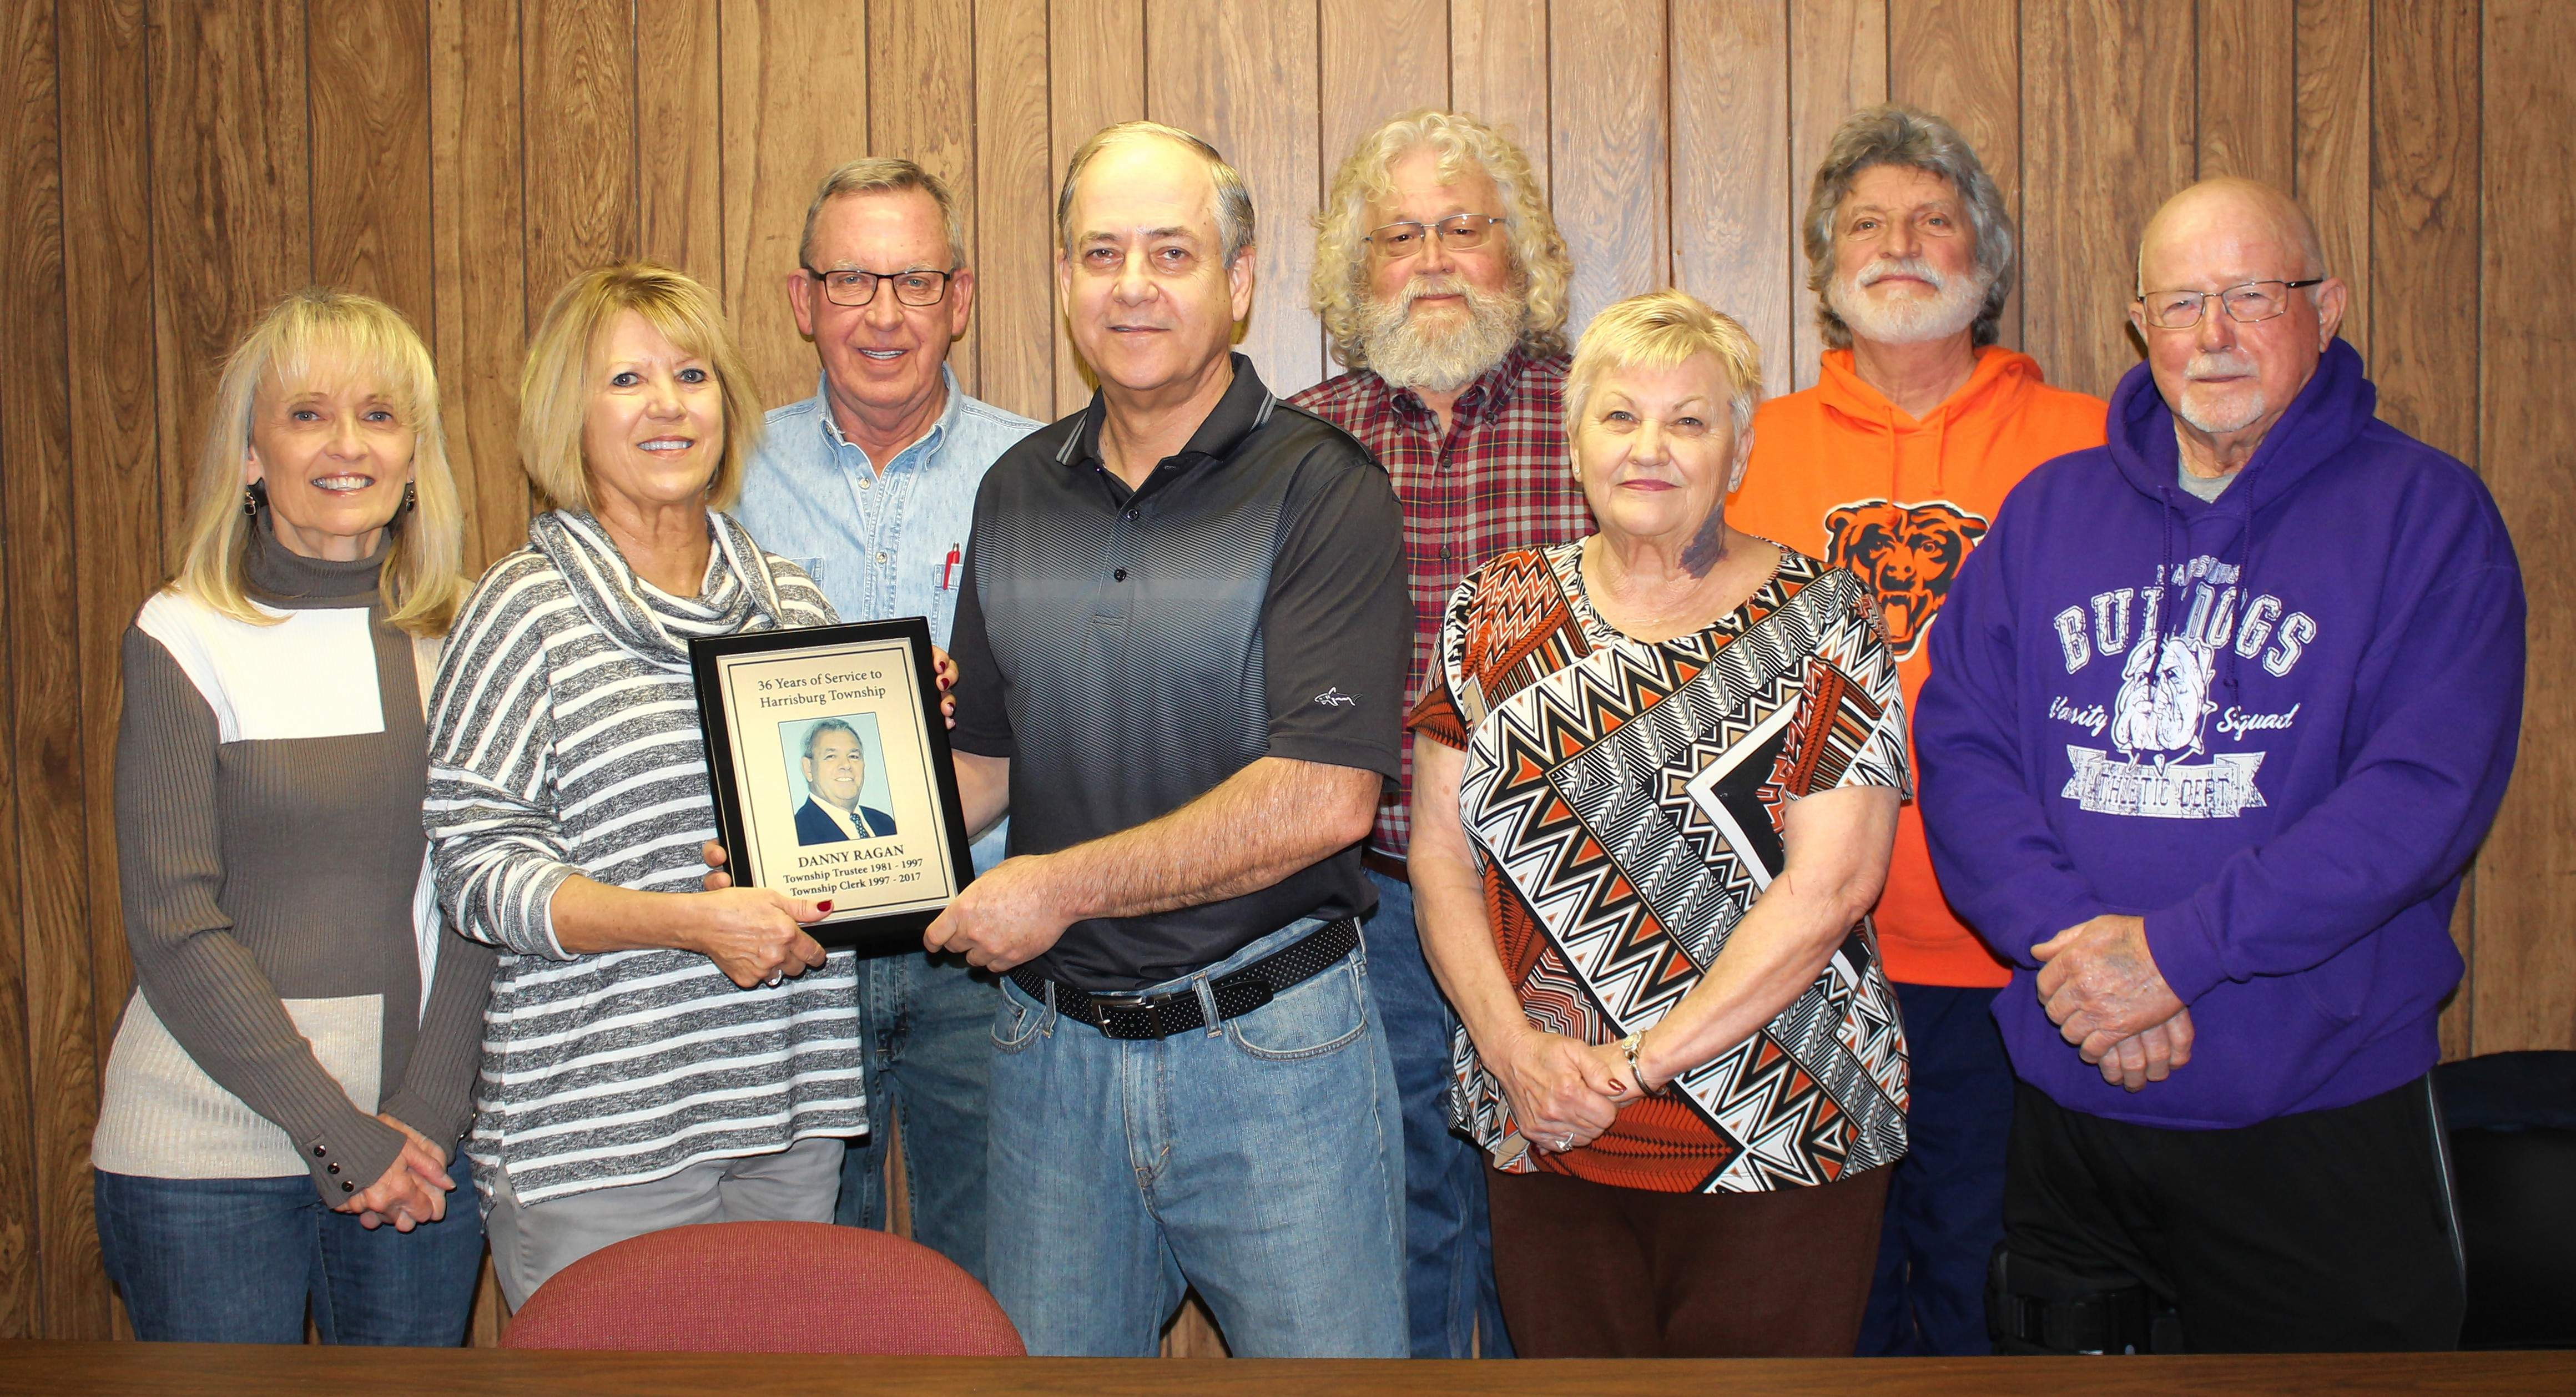 Harrisburg Township officials recently presented a plaque honoring the late Danny Ragan's 36 years of service to the township to his wife Kathy Ragan. From left are Township Assessor Elaine Clayton , Kathy Ragan, trustee Steve Horn, Township Supervisor Danny Clayton, trustee Tim Mitchell, trustee Gailene Harrelson, trustee Roger Angelly, and Road Commissioner Bob Holmes.